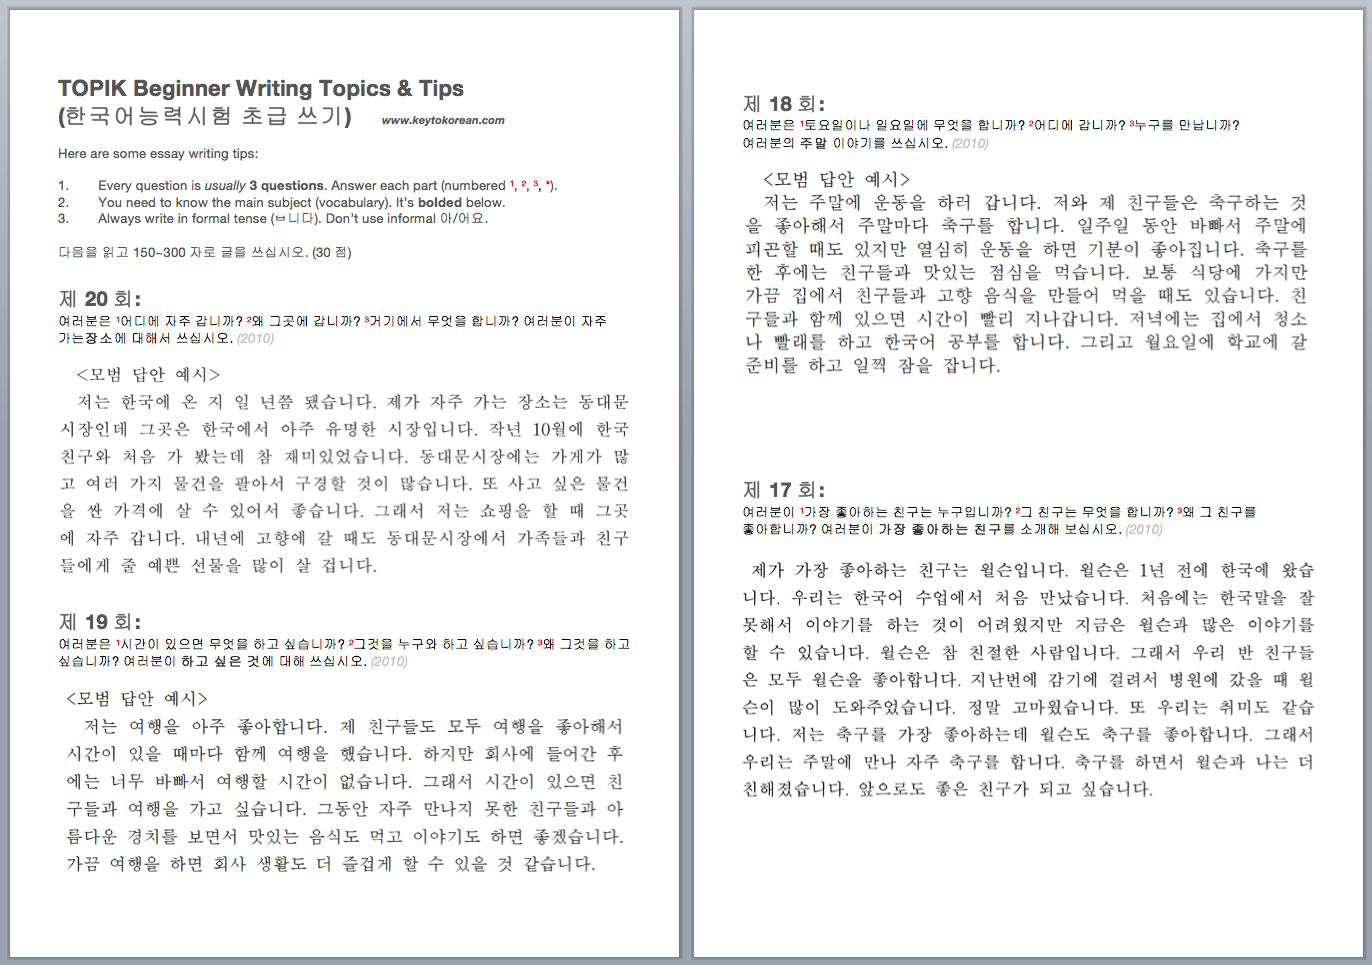 001 Screen Shot At Amssl1 Essay Example Stirring Korean Examples About Myself Contest Full